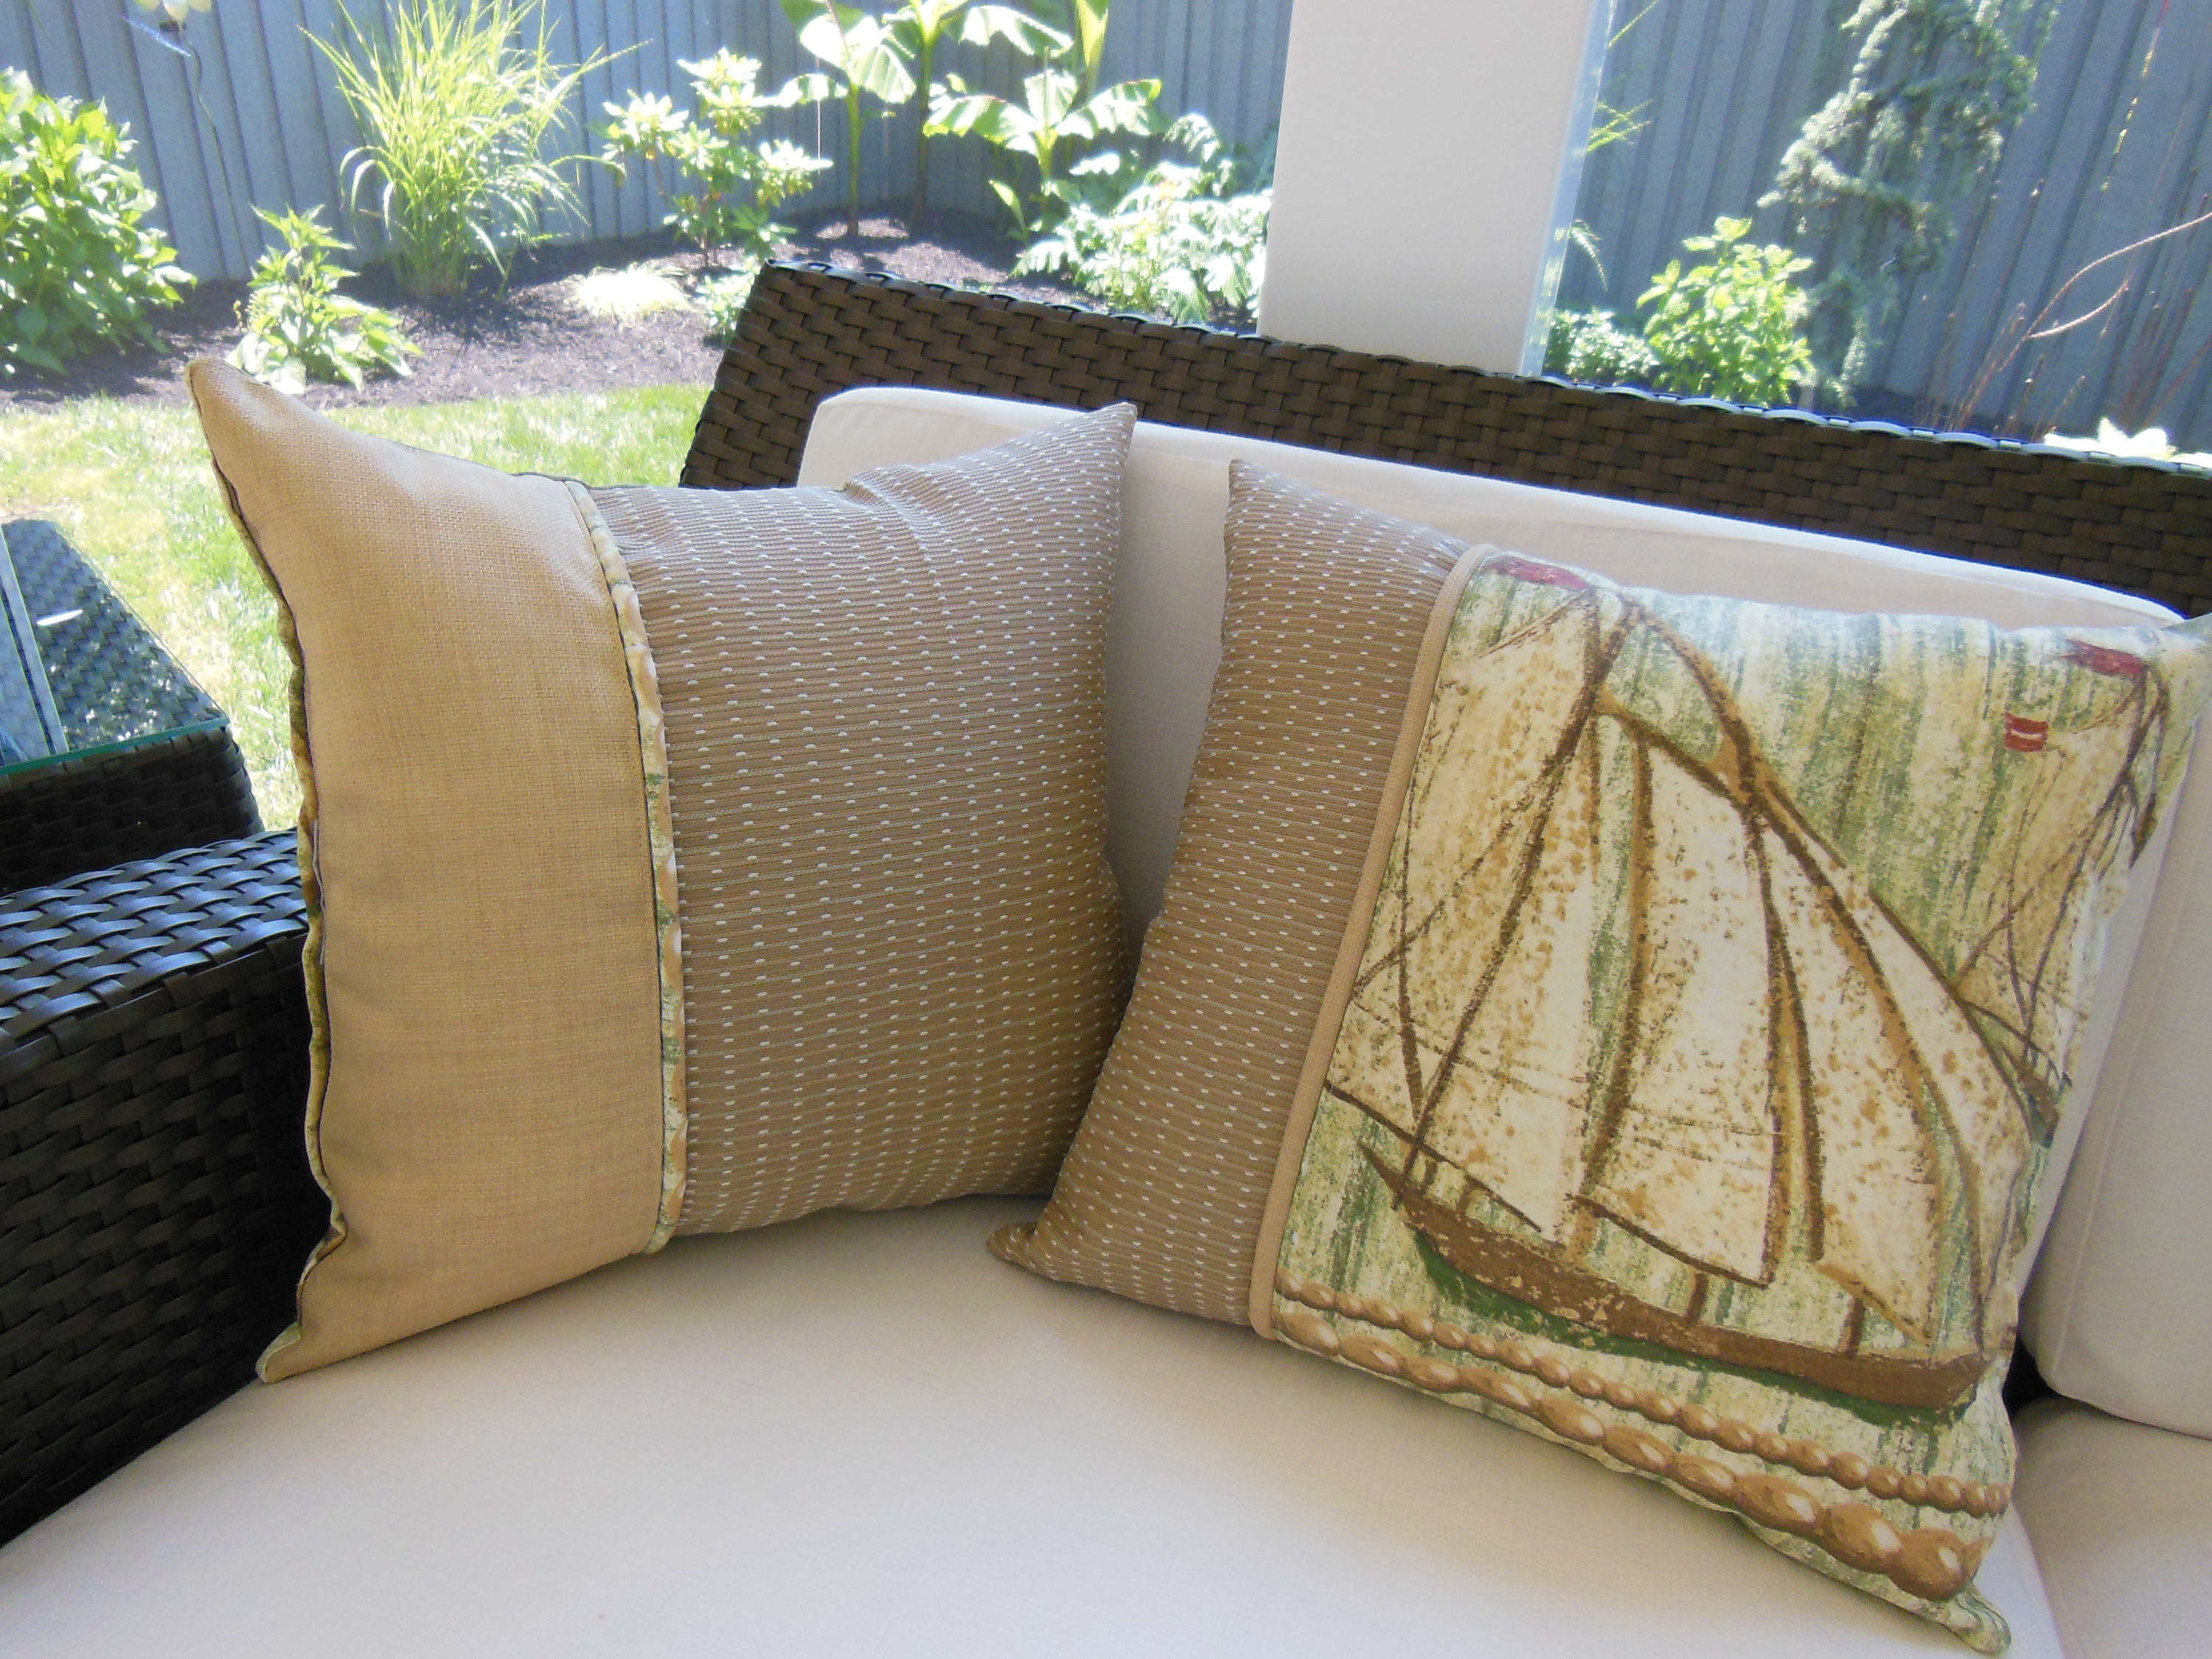 Outdoor Ship Pillow Beach Pillow Porch Pillow Vintage Style